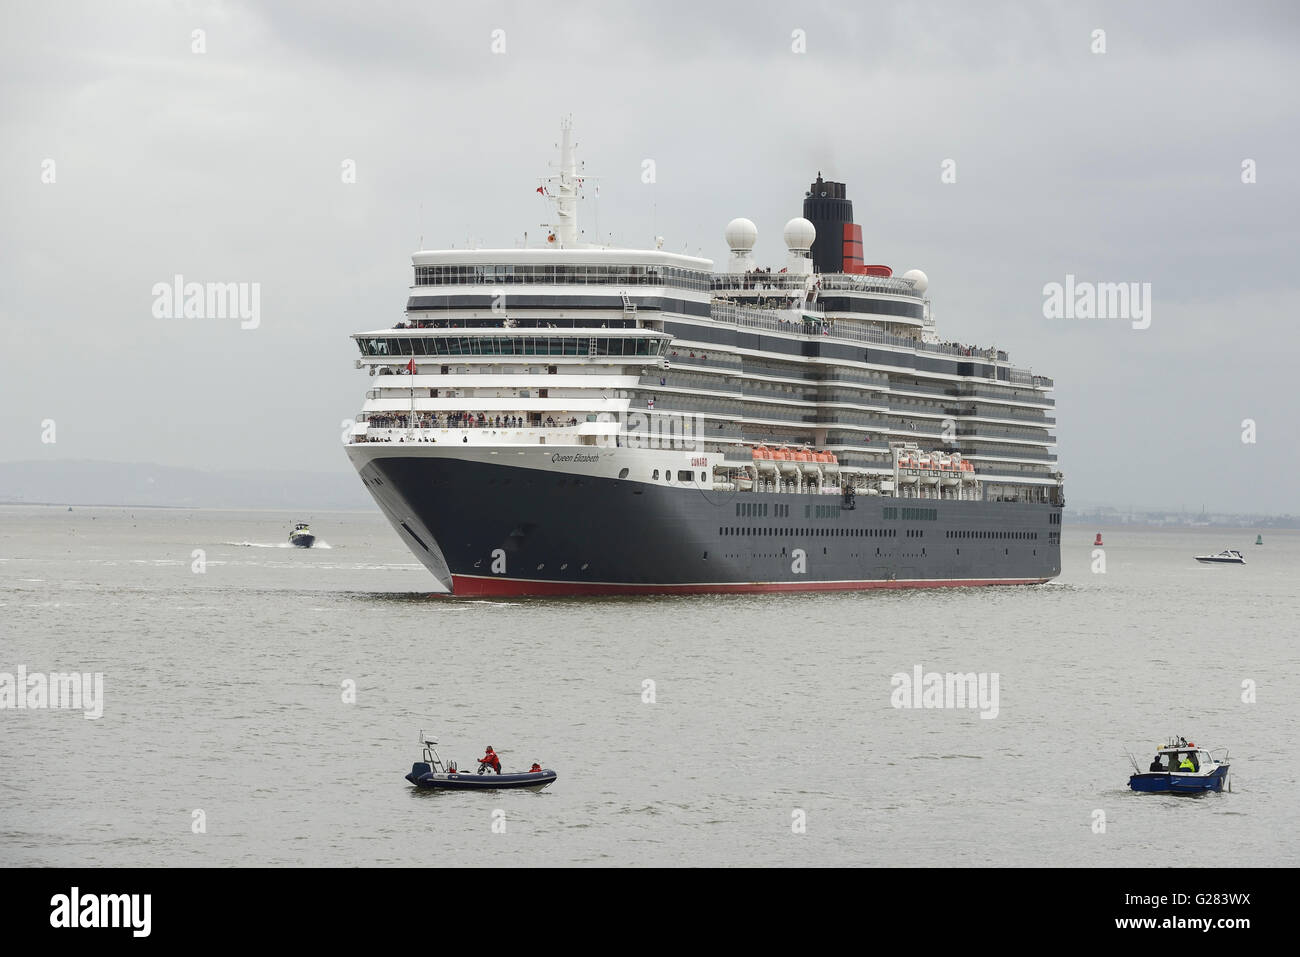 Cunard Queen Elizabeth on the River Mersey in Liverpool - Stock Image